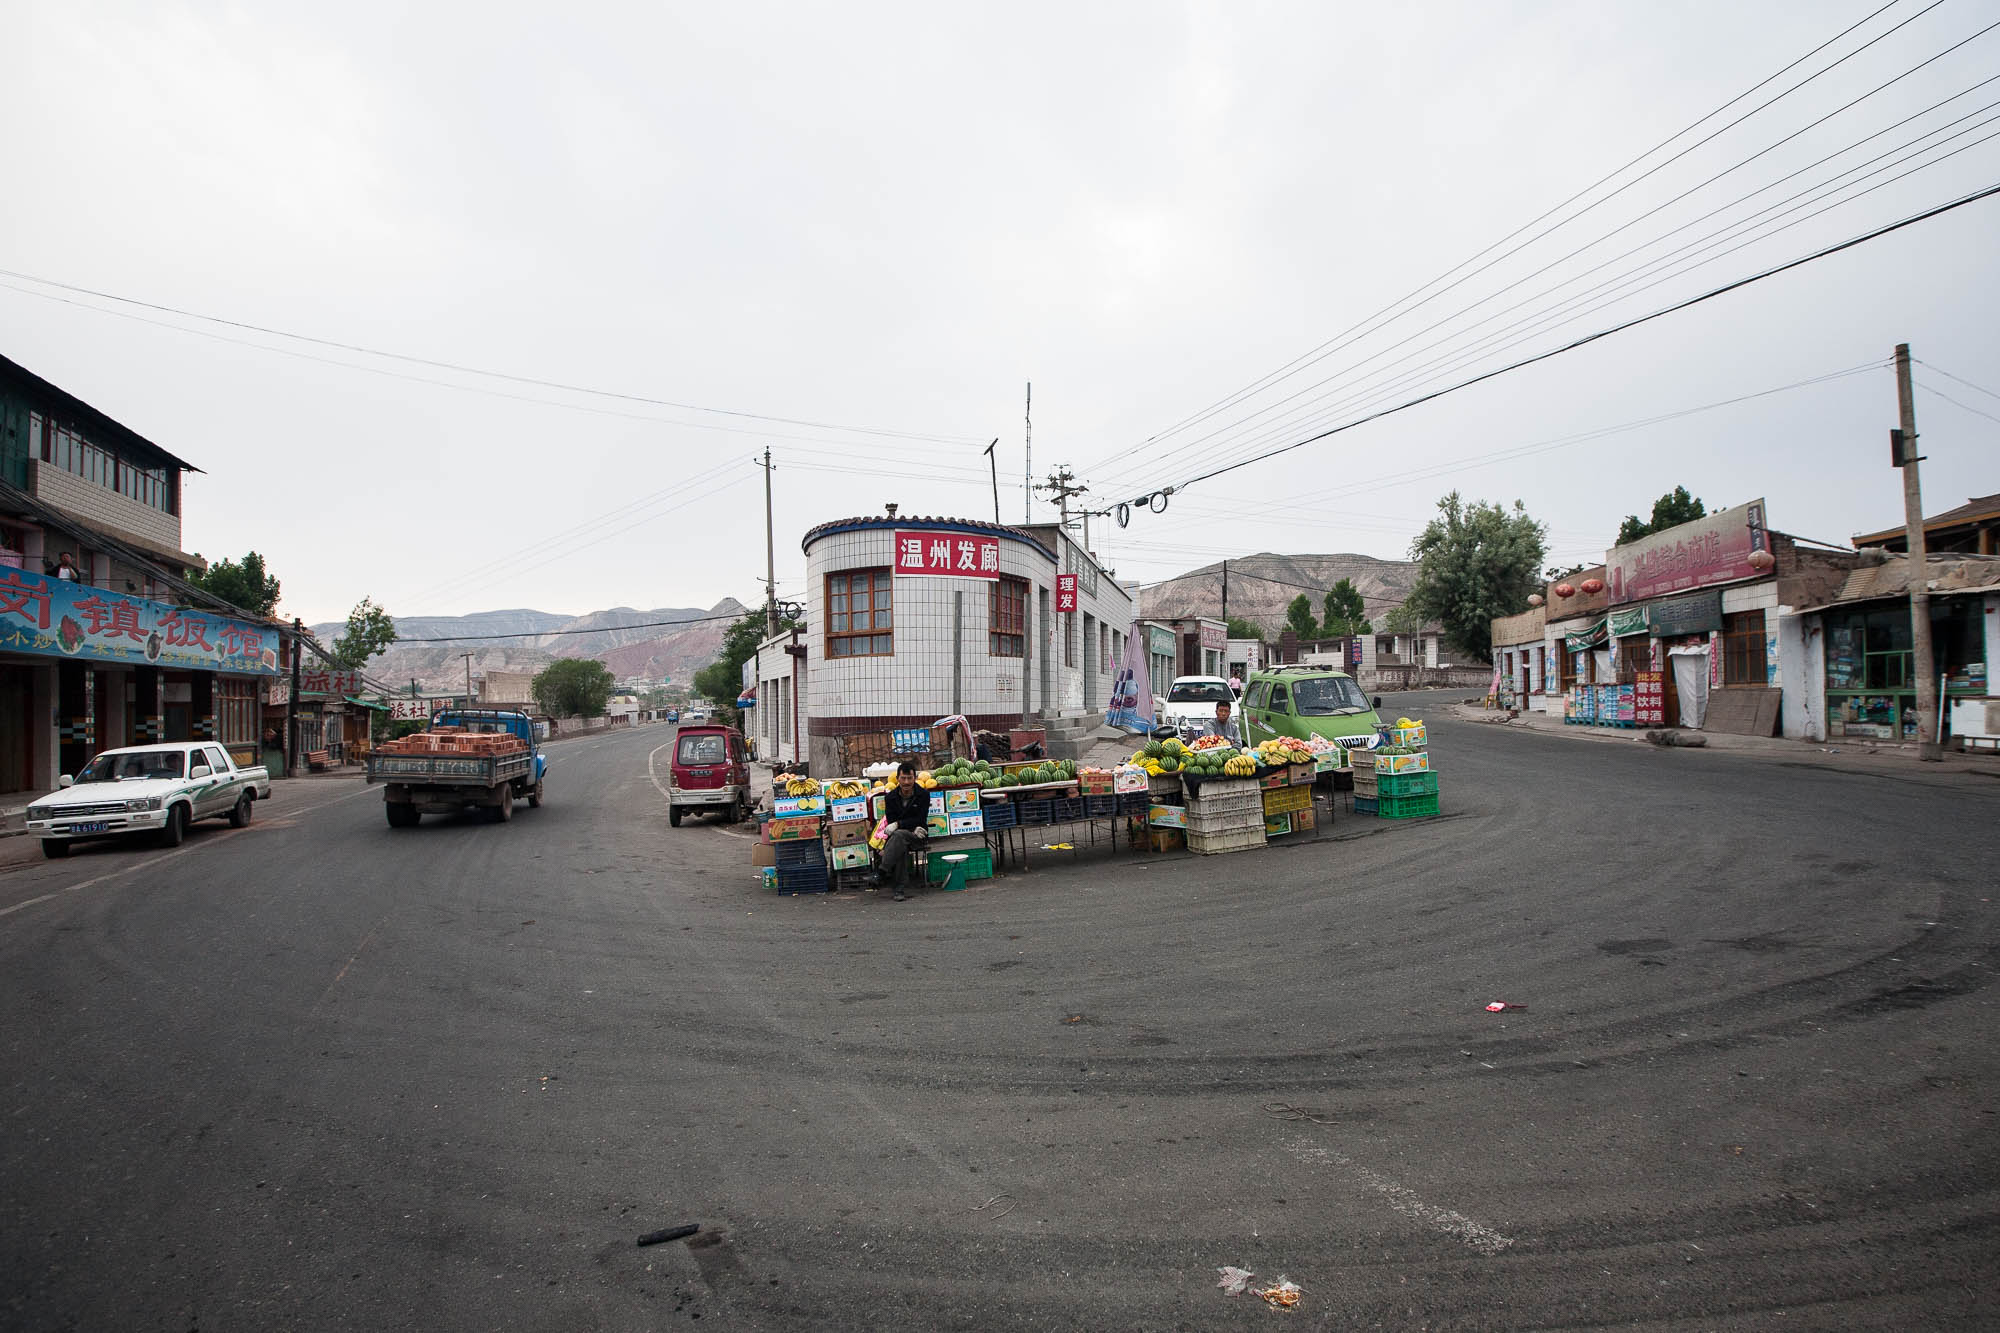 left to Tibet, right to Xinjiang